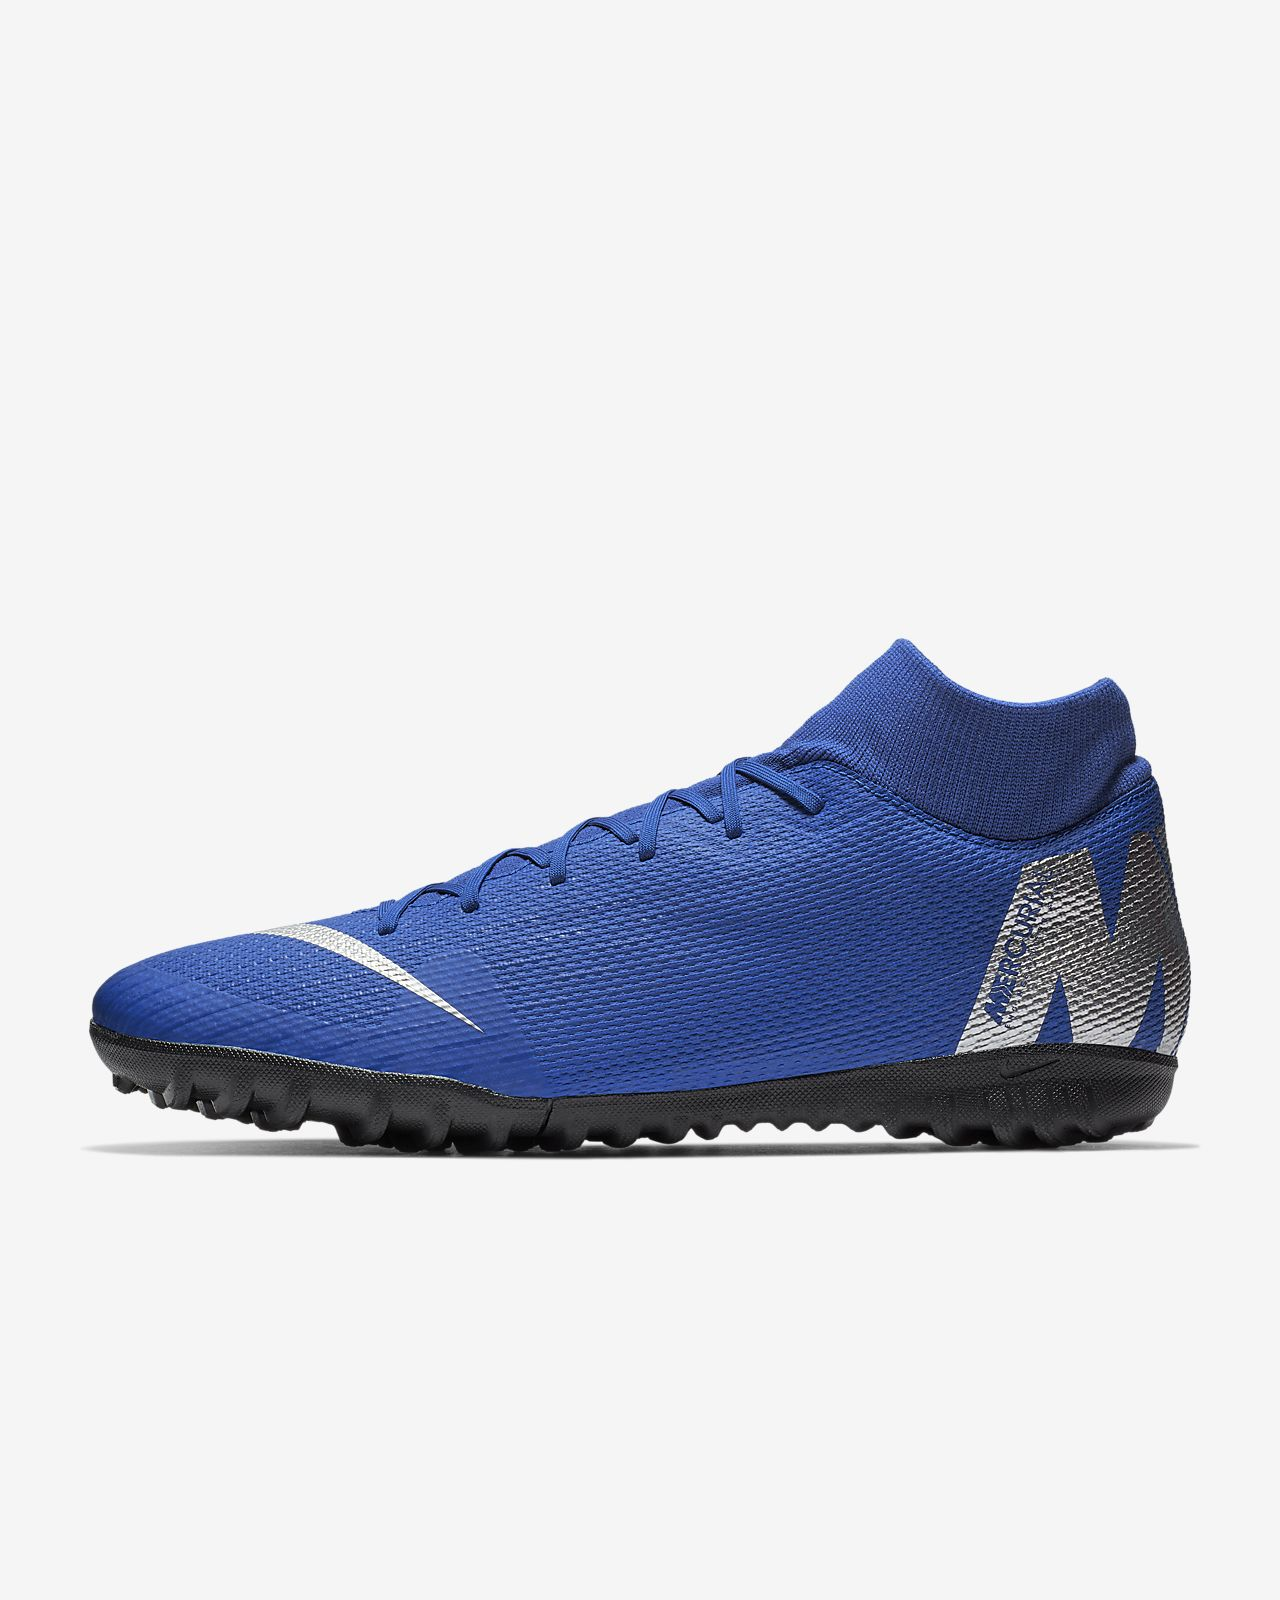 Chaussure de football pour surface synthétique Nike MercurialX Superfly VI Academy